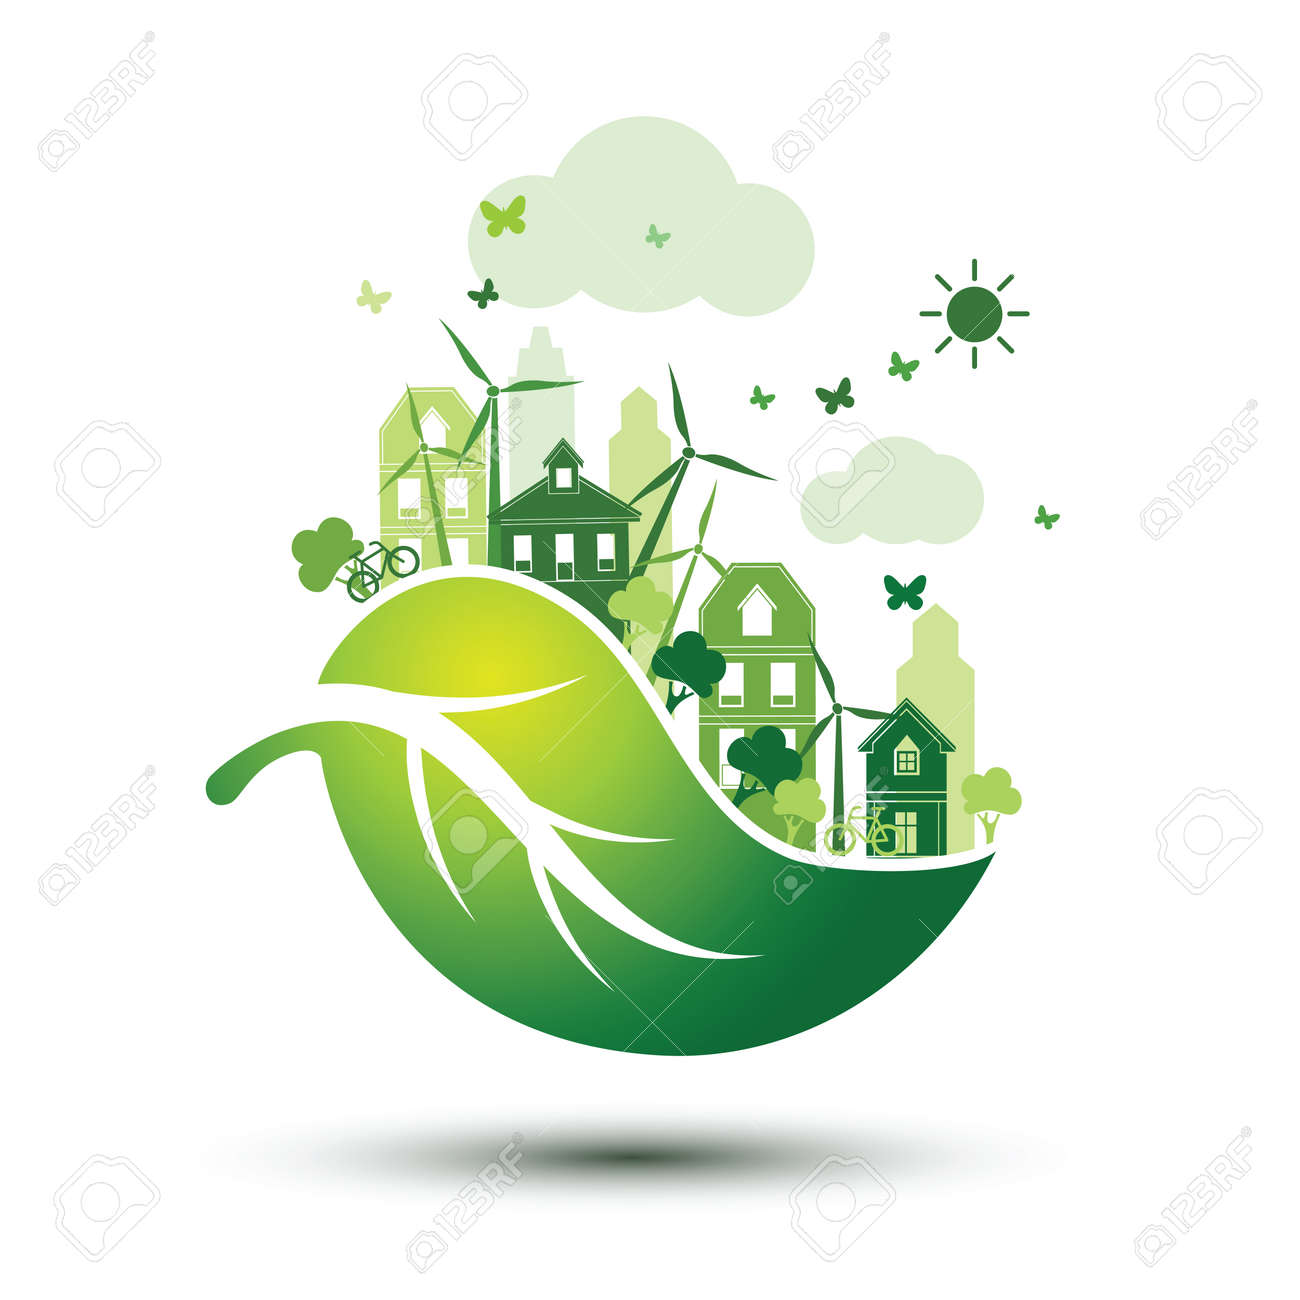 green city with green Eco leaves concept ,illustration - 51549139